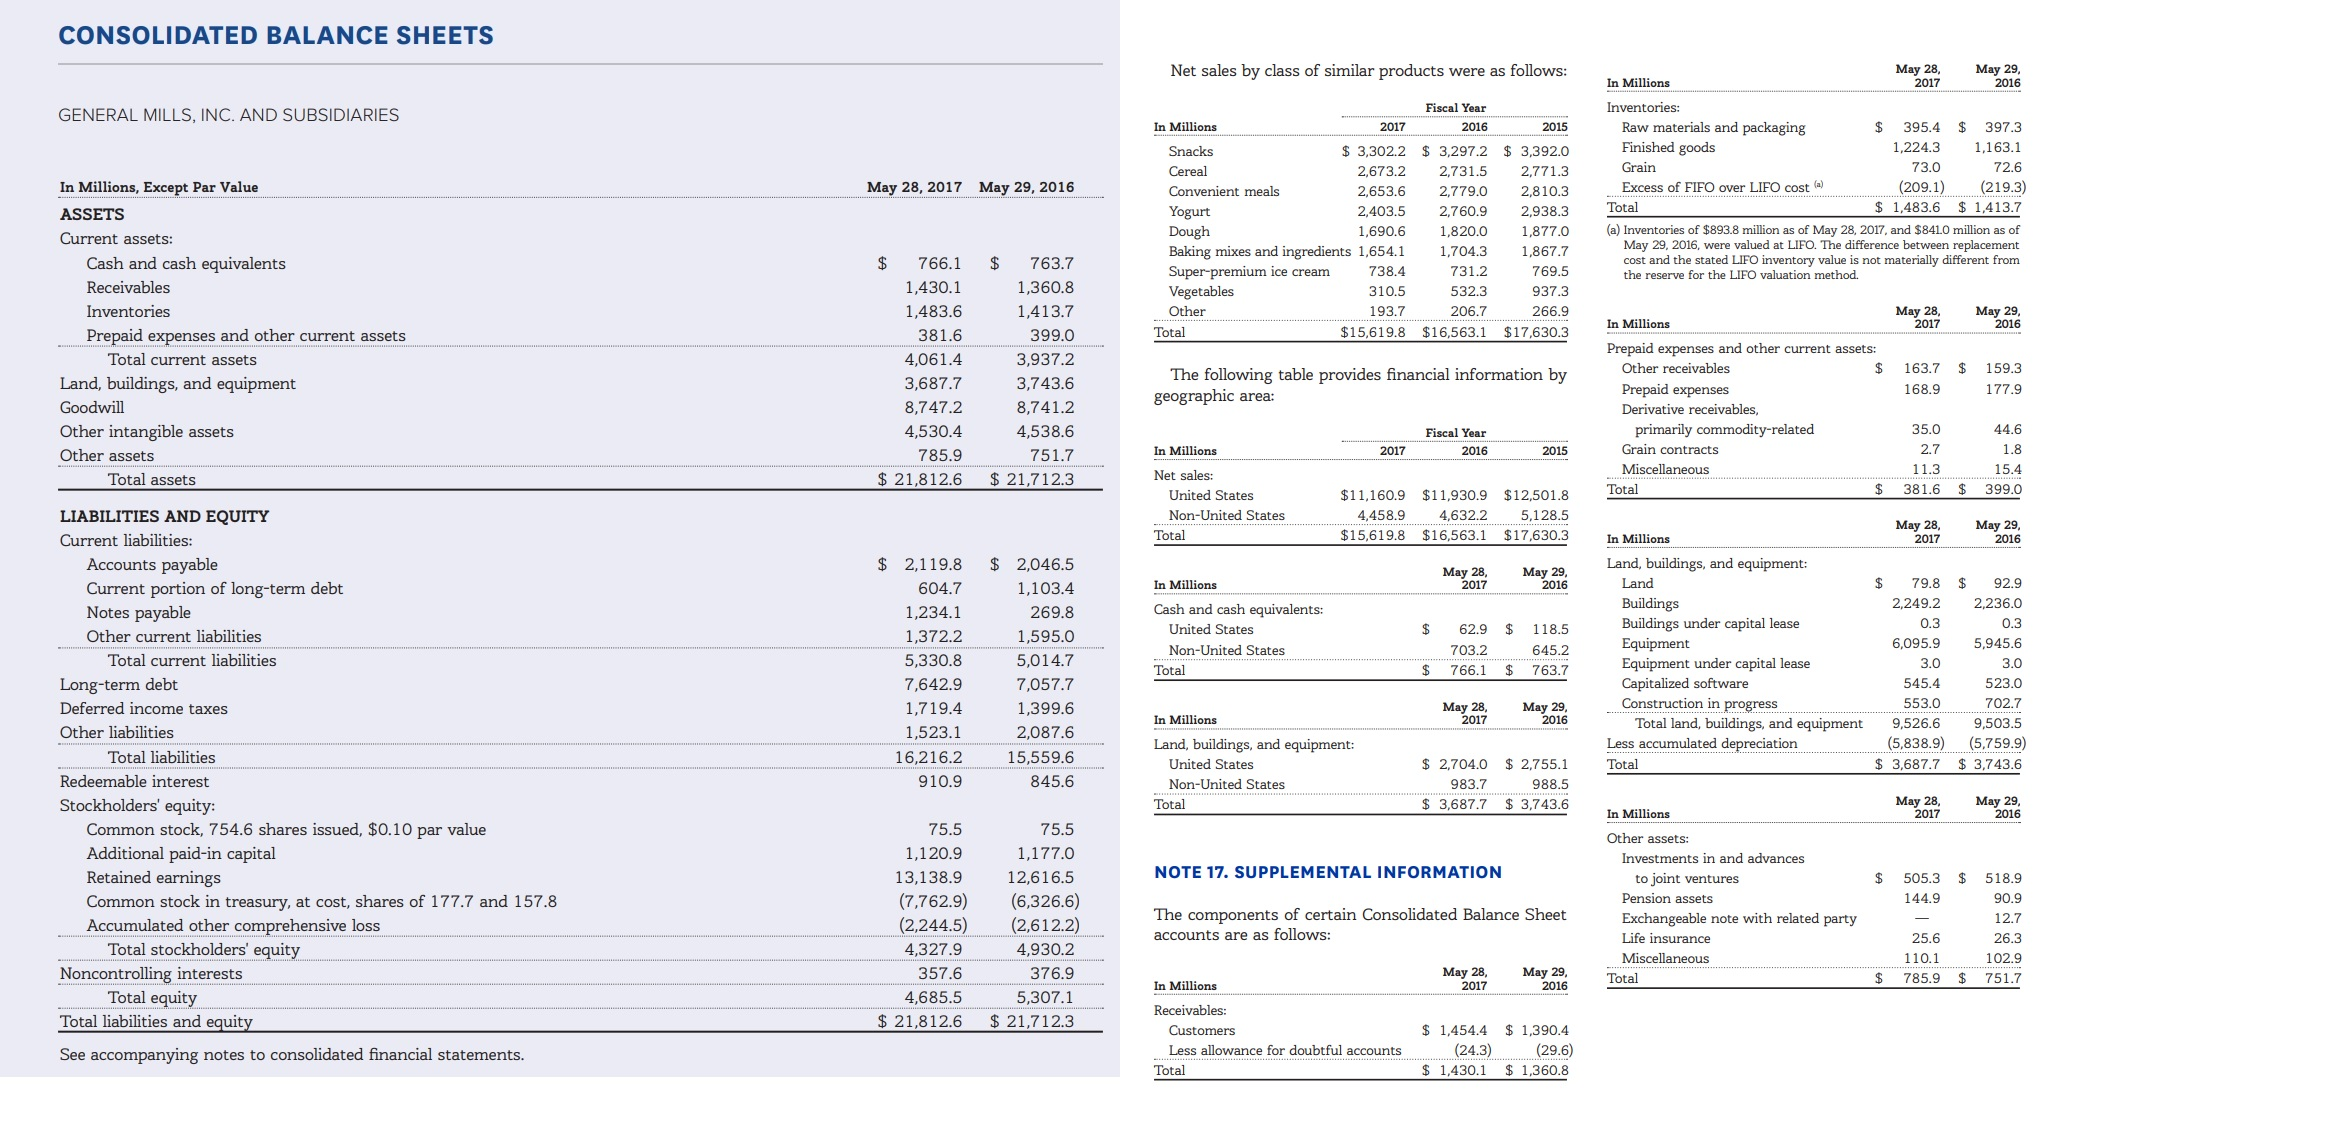 CONSOLIDATED BALANCE SHEETS May 28, 2017 May 29, 2016 Net sales by class of similar products were as follows: In Millions Inventories: Fiscal Year GENERAL MILLS, INC. AND SUBSIDIARIES Raw materials and packaging Finished goods In Millions 2017 2016 2015 395.4 397.3 1,224.3 1,163.1 $ 3,302.2 $ 3,297.2 $ 3,392.0 Snacks Grain 73.0 72.6 Cereal 2,673.2 2,731.5 2,771.3 (209.1) 1,483.6 $1,413.7 (219.3) In Millions, Except Par Value May 29, 2016 Excess of FIFO over LIFO cost (a) May 28, 2017 Convenient meals 2,653.6 2,779.0 2,810.3 Total Yogurt Dough Baking mixes and ingredients 1,654.1 Super-premium ice cream 2,403.5 2,760.9 2,938.3 ASSETS (a) Inventories of $893.8 million as of May 28, 2017, and $8410 million as of May 29, 2016, were valued at LIFO. The difference between replacement cost and the stated LIFO inventory value is not materially different from the reserve for the LIFO valuation method. 1,690.6 1,820.0 1,877.0 Current assets: 1,867.7 1,704.3 Cash and cash equivalents $ 763.7 1,360.8 $ 766.1 738.4 731.2 769.5 Receivables 1,430.1 Vegetables 310.5 532.3 937.3 Мay 29, 2016 Inventories 1,483.6 1,413.7 Мay 28, 2017 Other 193.7 206.7 266.9 In Millions $15,619.8 $16,563.1 $17,630.3 Total Prepaid expenses and other current assets 381.6 399.0 Prepaid expenses and other current assets: Total current assets 4,061.4 3,937.2 163.7 Other receivables 159.3 The following table provides financial information by geographic area: Land, buildings, and equipment 3,687.7 3,743.6 Prepaid expenses 168.9 177.9 Goodwill 8,747.2 8,741.2 Derivative receivables, primarily commodity-related Grain contracts Other intangible assets 35.0 44.6 4,530.4 4,538.6 Fiscal Year 2.7 1.8 In Millions 2017 2016 2015 Other assets 785.9 751.7 Miscellaneous 11.3 15.4 Net sales: Total assets $ 21,812.6 $ 21,712.3 381.6 $ Total 399.0 $11,160.9 $11,930.9 $12,501.8 United States 4,632.2 LIABILITIES AND EQUITY Non-United States 4,458.9 5,128.5 May 28, 2017 Мay 29, 2016 $15,619.8 $16,563.1 $17,630.3 Total In Milli